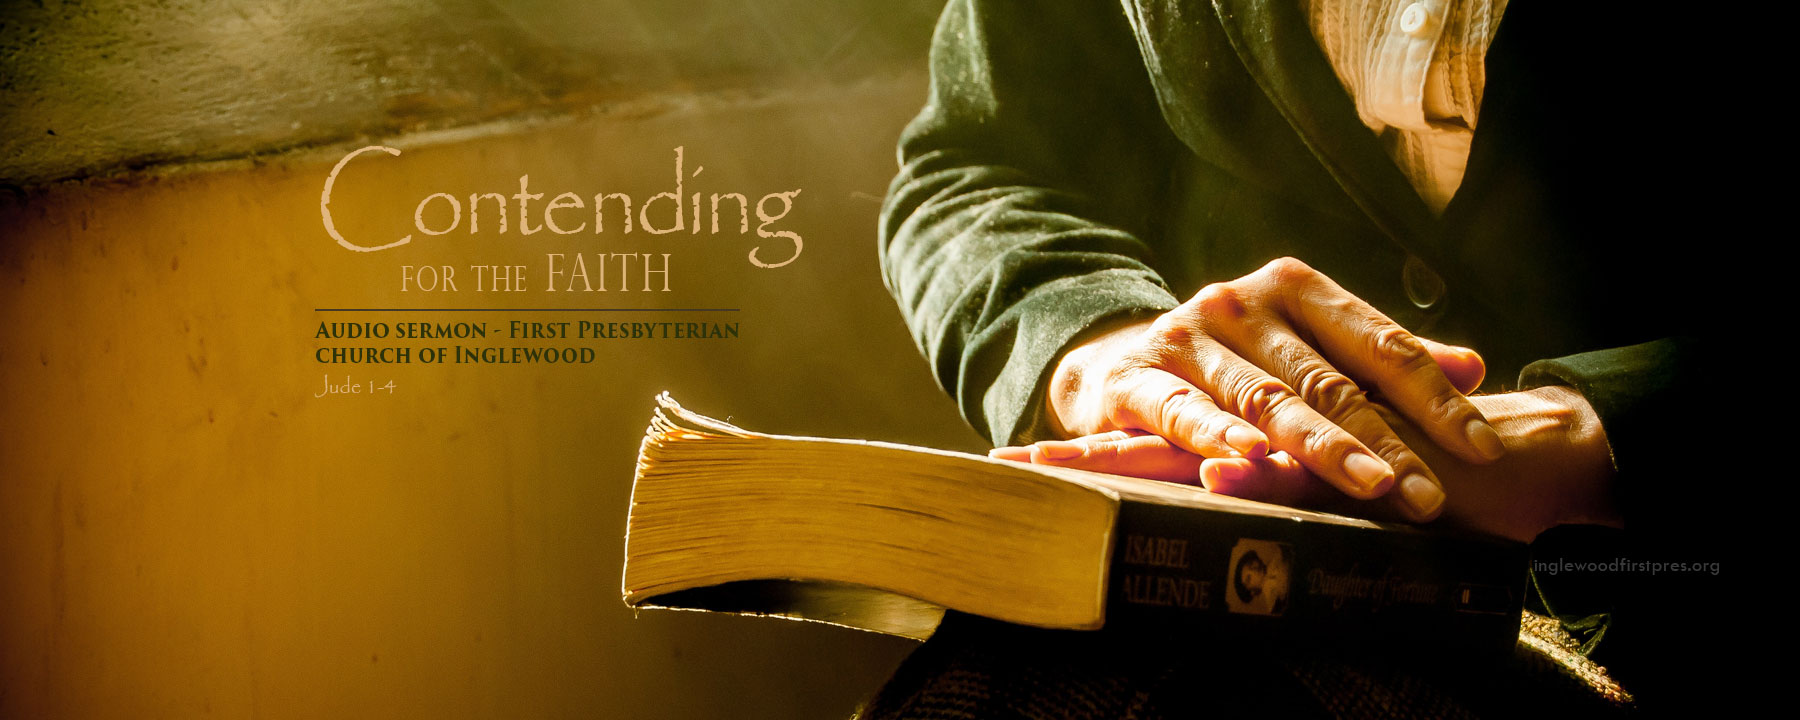 Audio Sermon: Contending to the Faith by Rev. Harold E. Kidd (Jude 1-4)